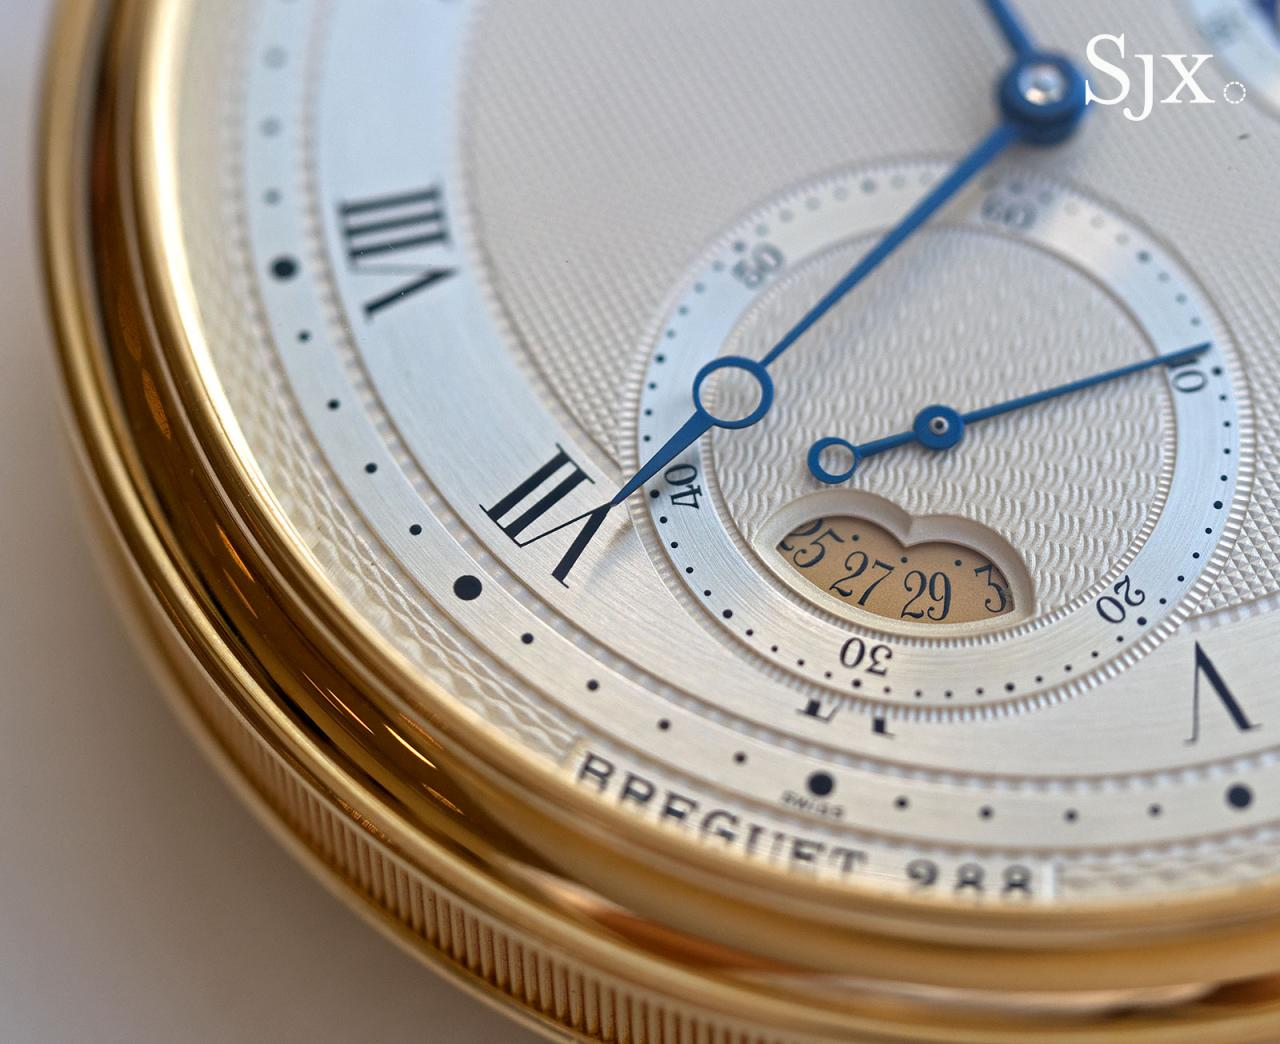 Breguet Souscription set pocket watch 13